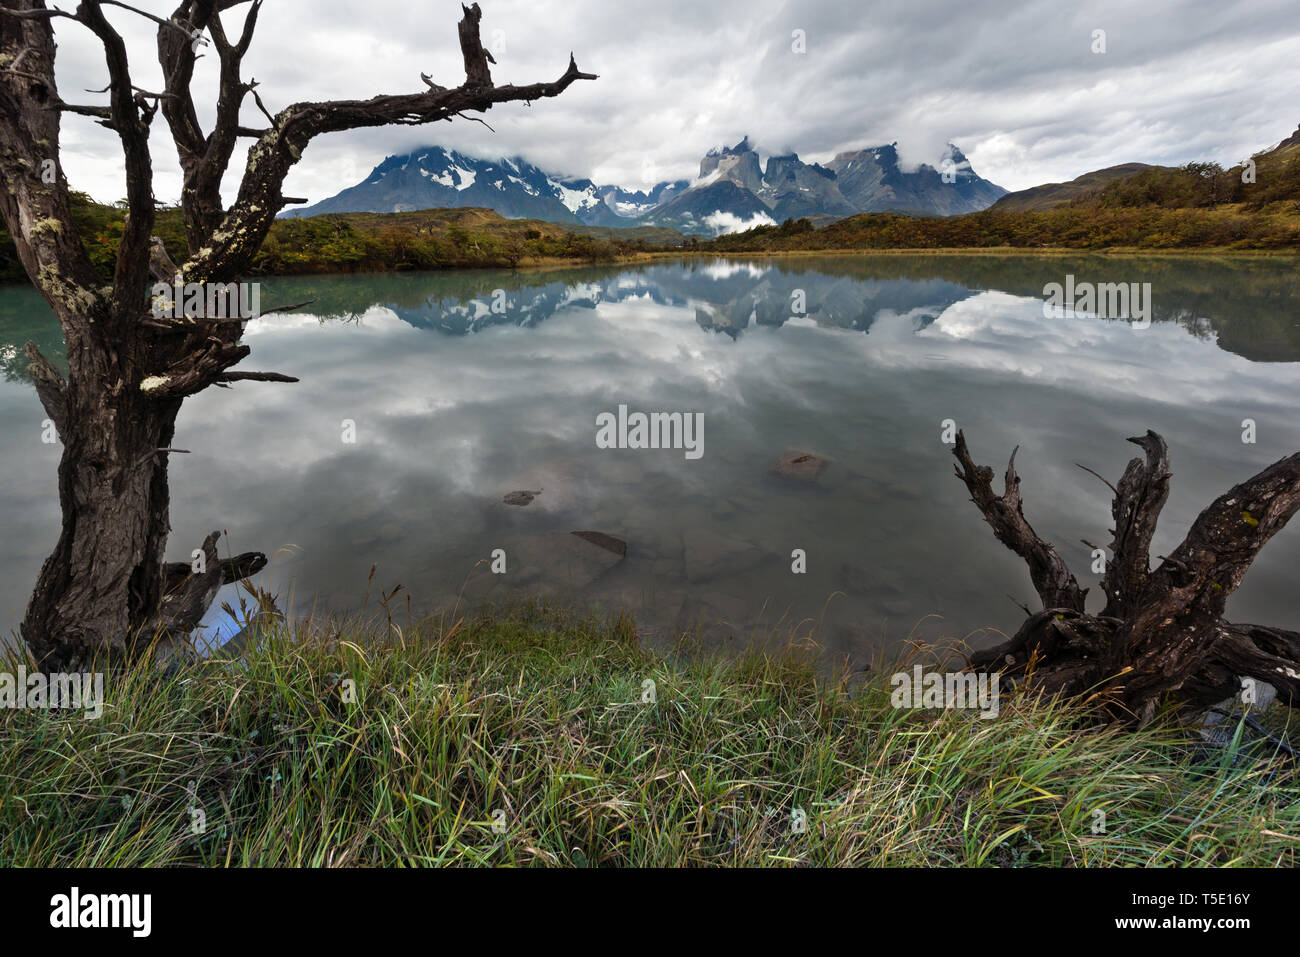 the lake Pehoe and the massif of thel Paine, Torres del Paine NP, Chile - Stock Image